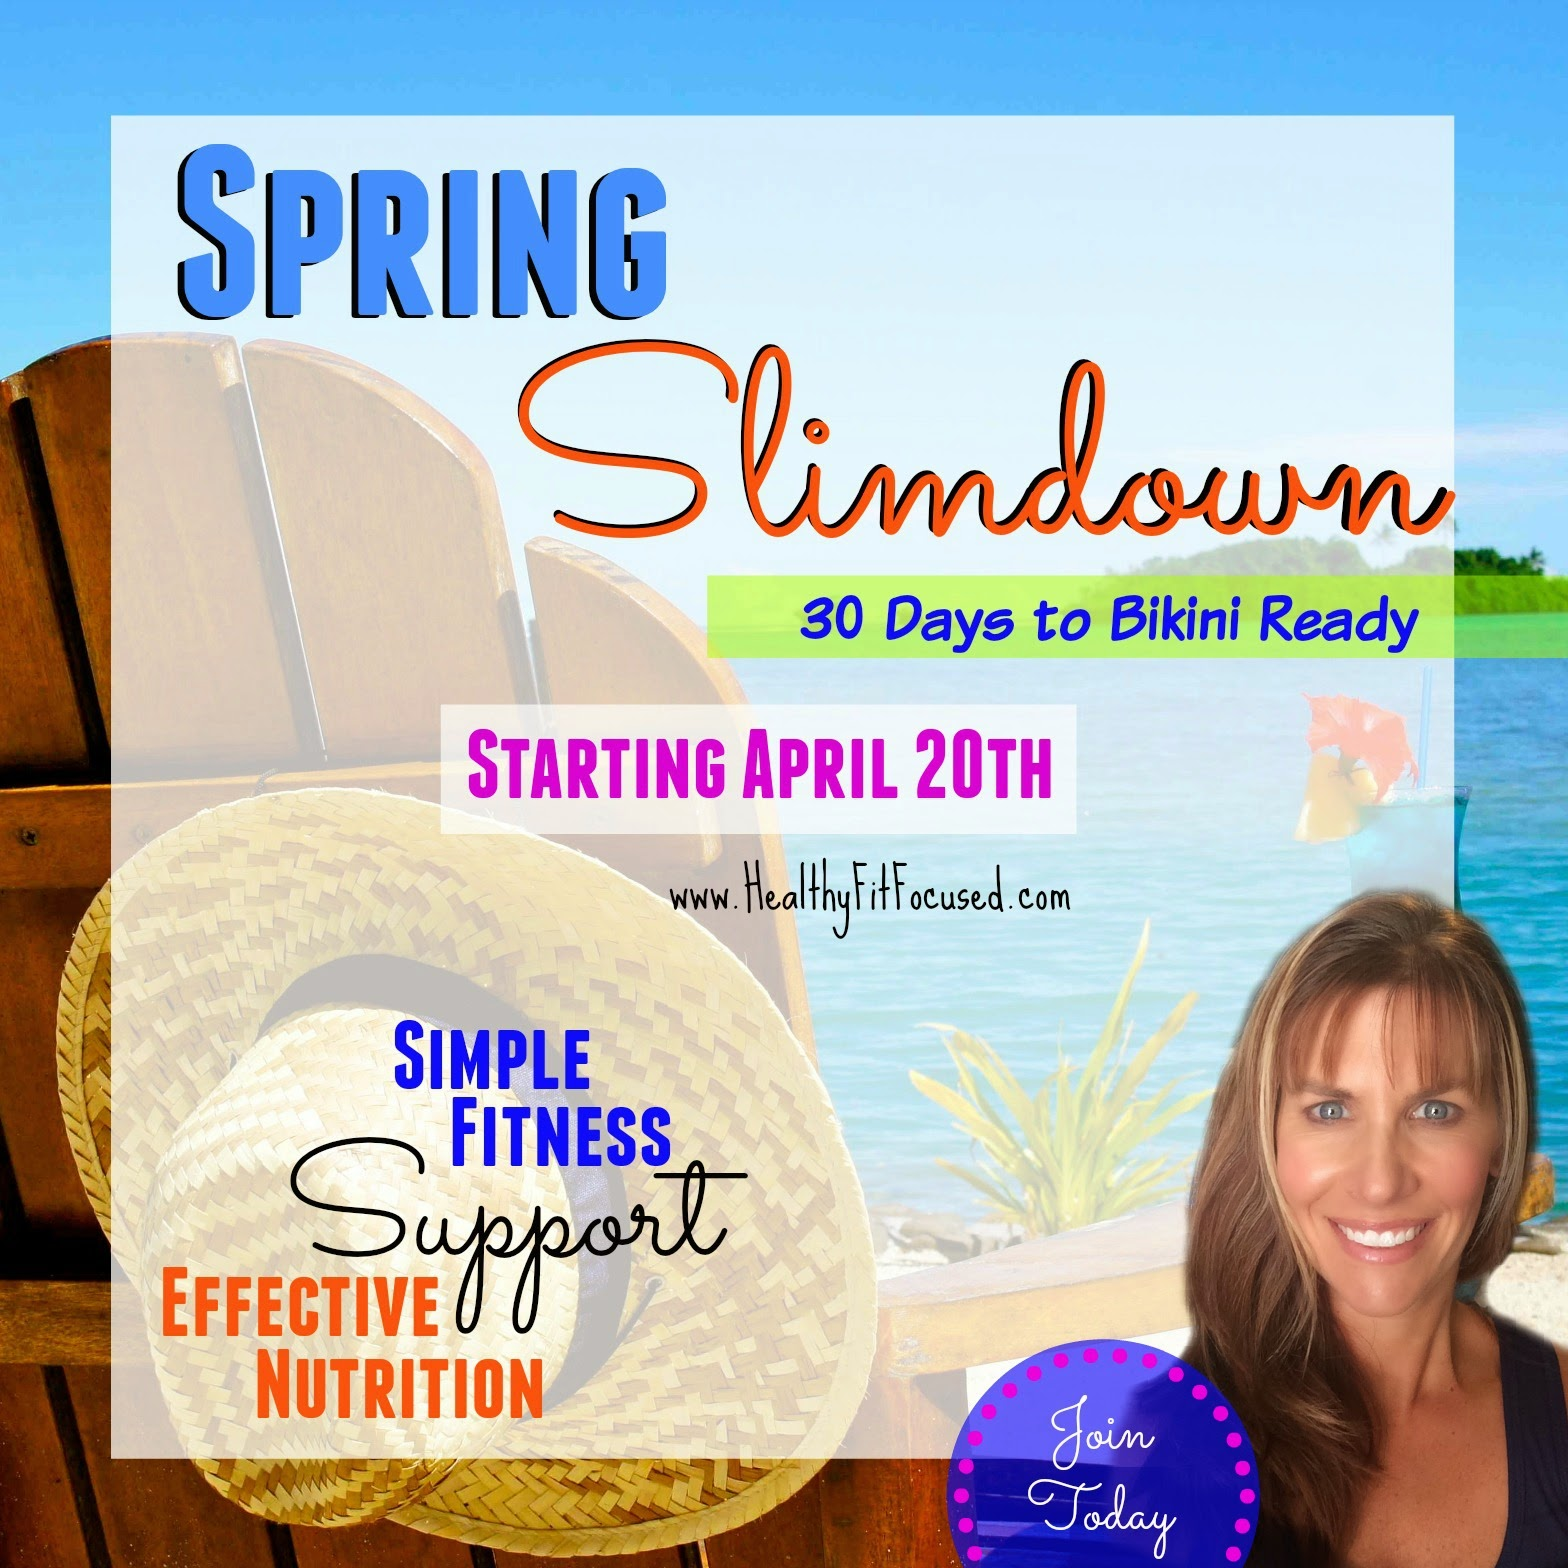 Muffin Top, Julie Little, Clean Eating, Spring Slim Down, 30 Days to Bikini Ready,  21 Day Fix, Max30, Support, Simple Fitness, Effective Nutrition